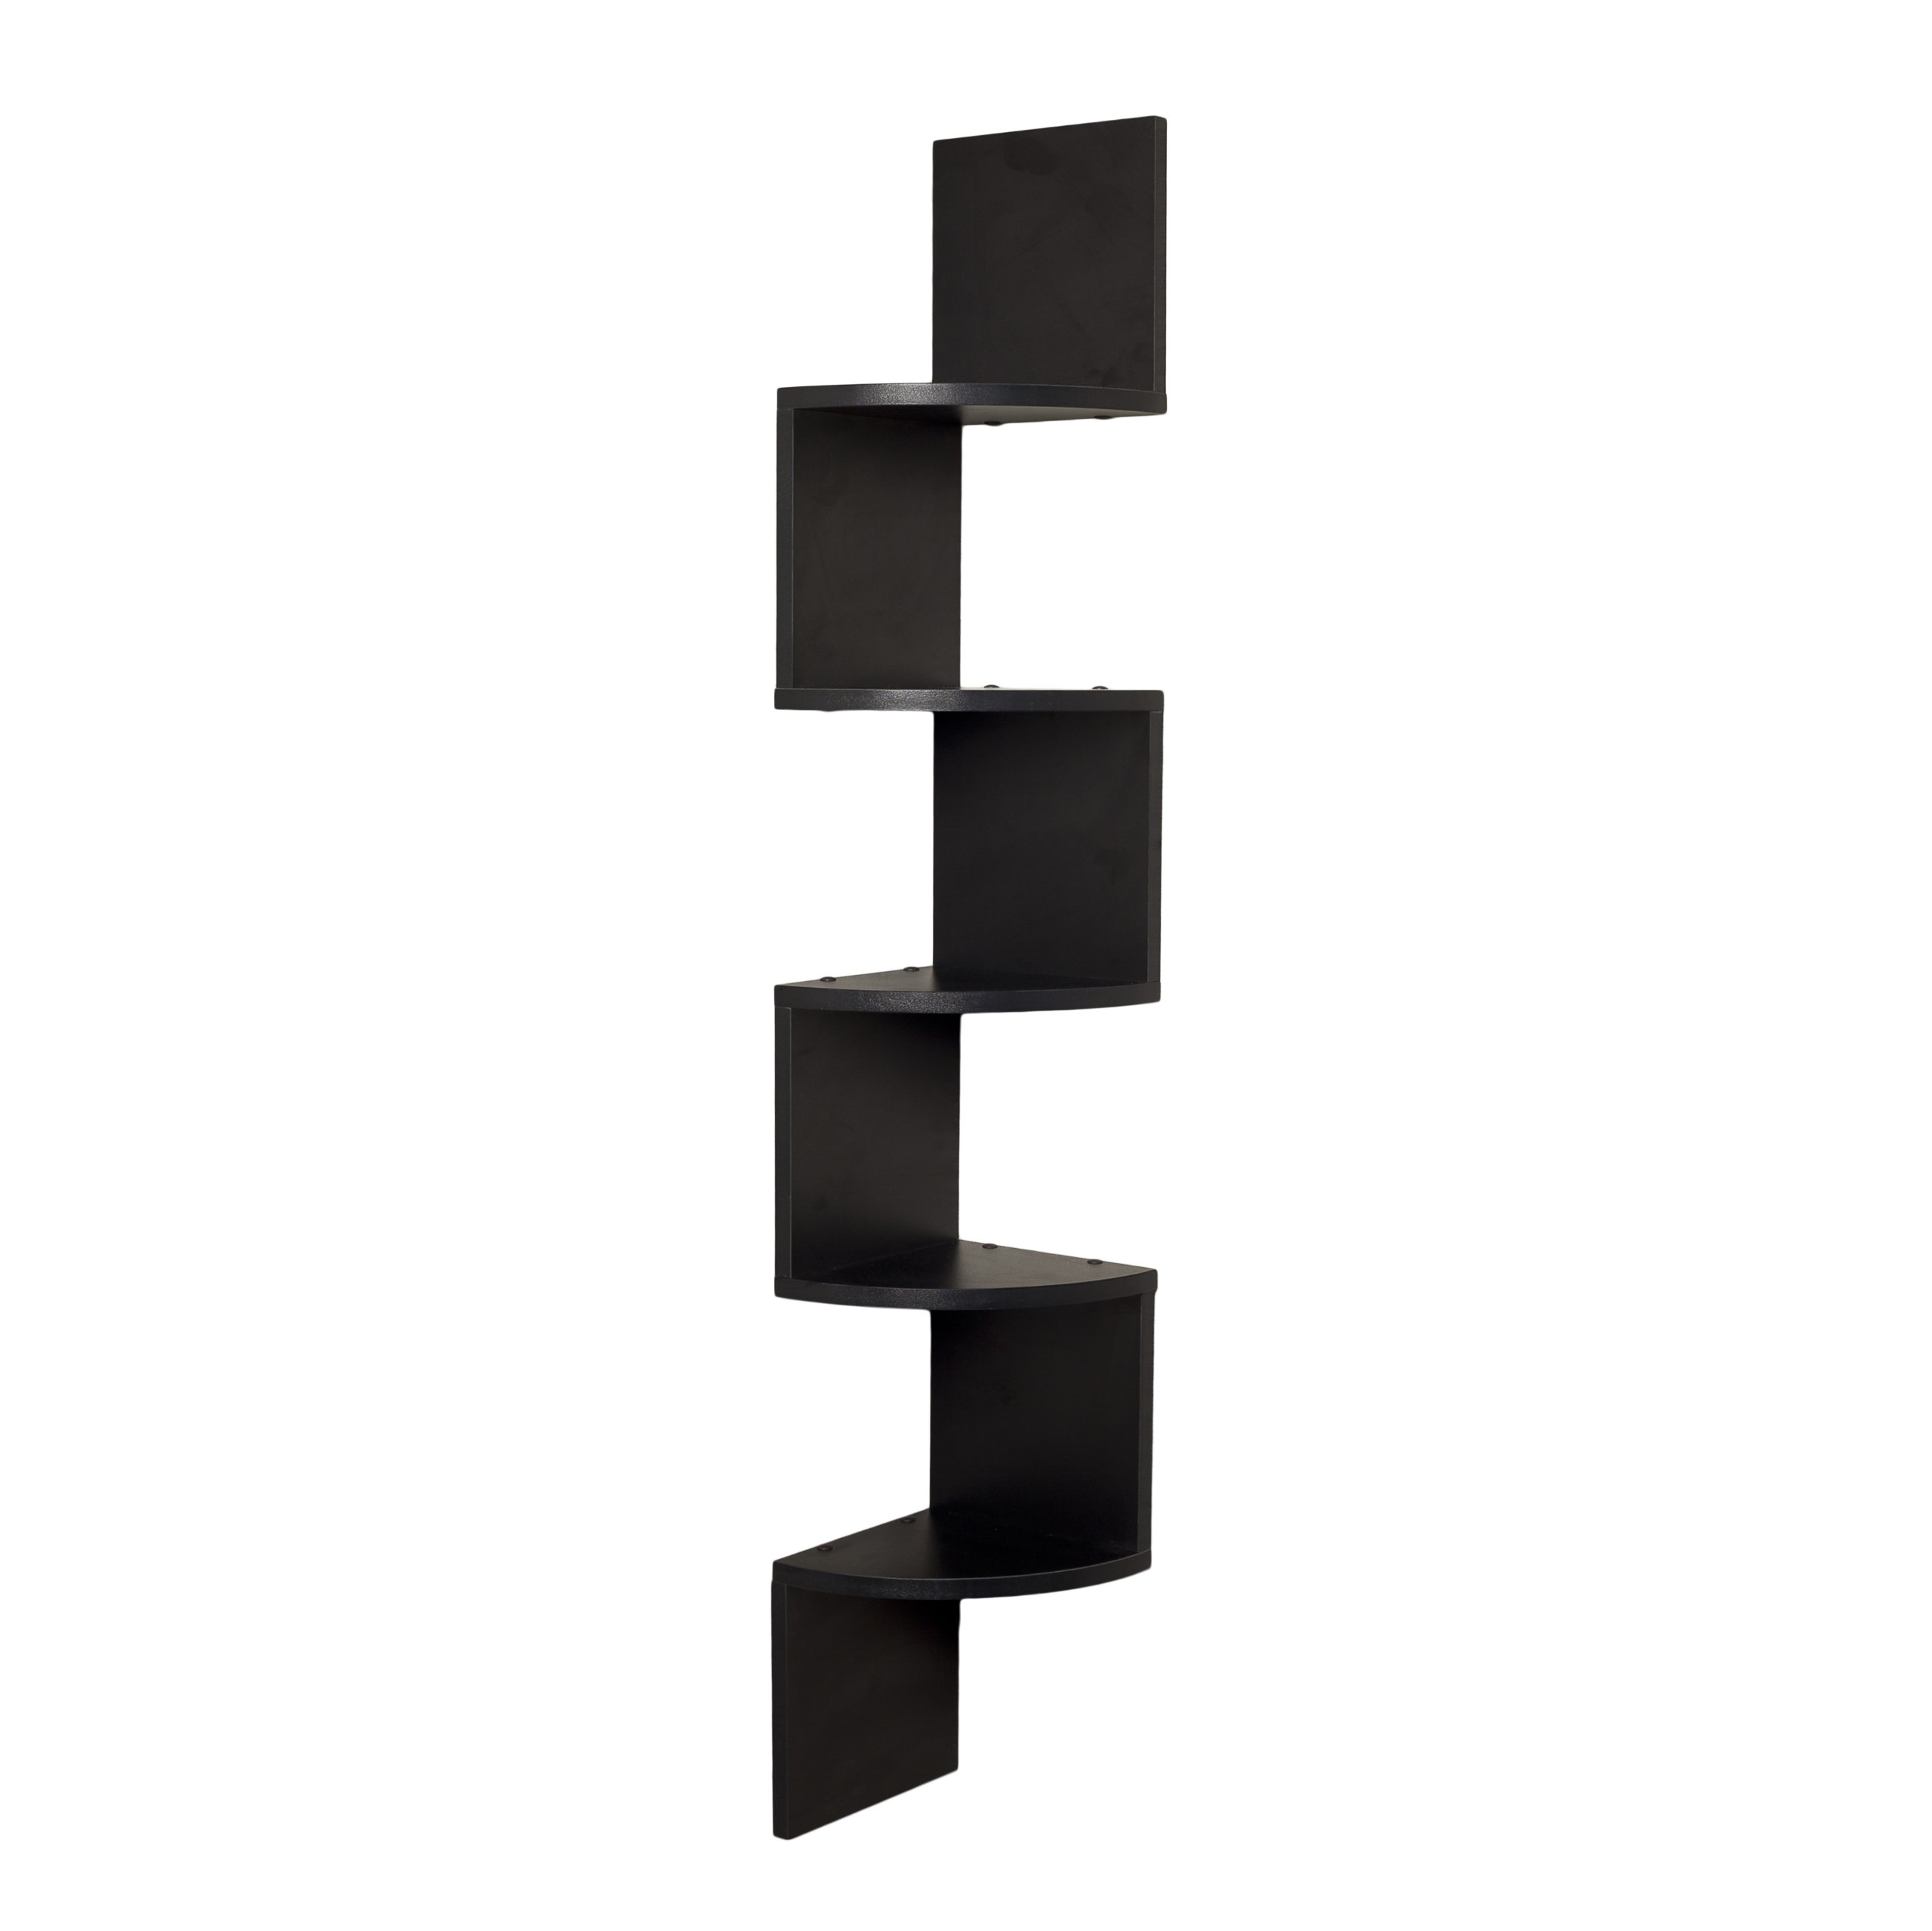 Danya B. XF11035BK Large Decorative 5-Tier Corner Floating Wall Mount Display Shelving Unit - Black by Danya B